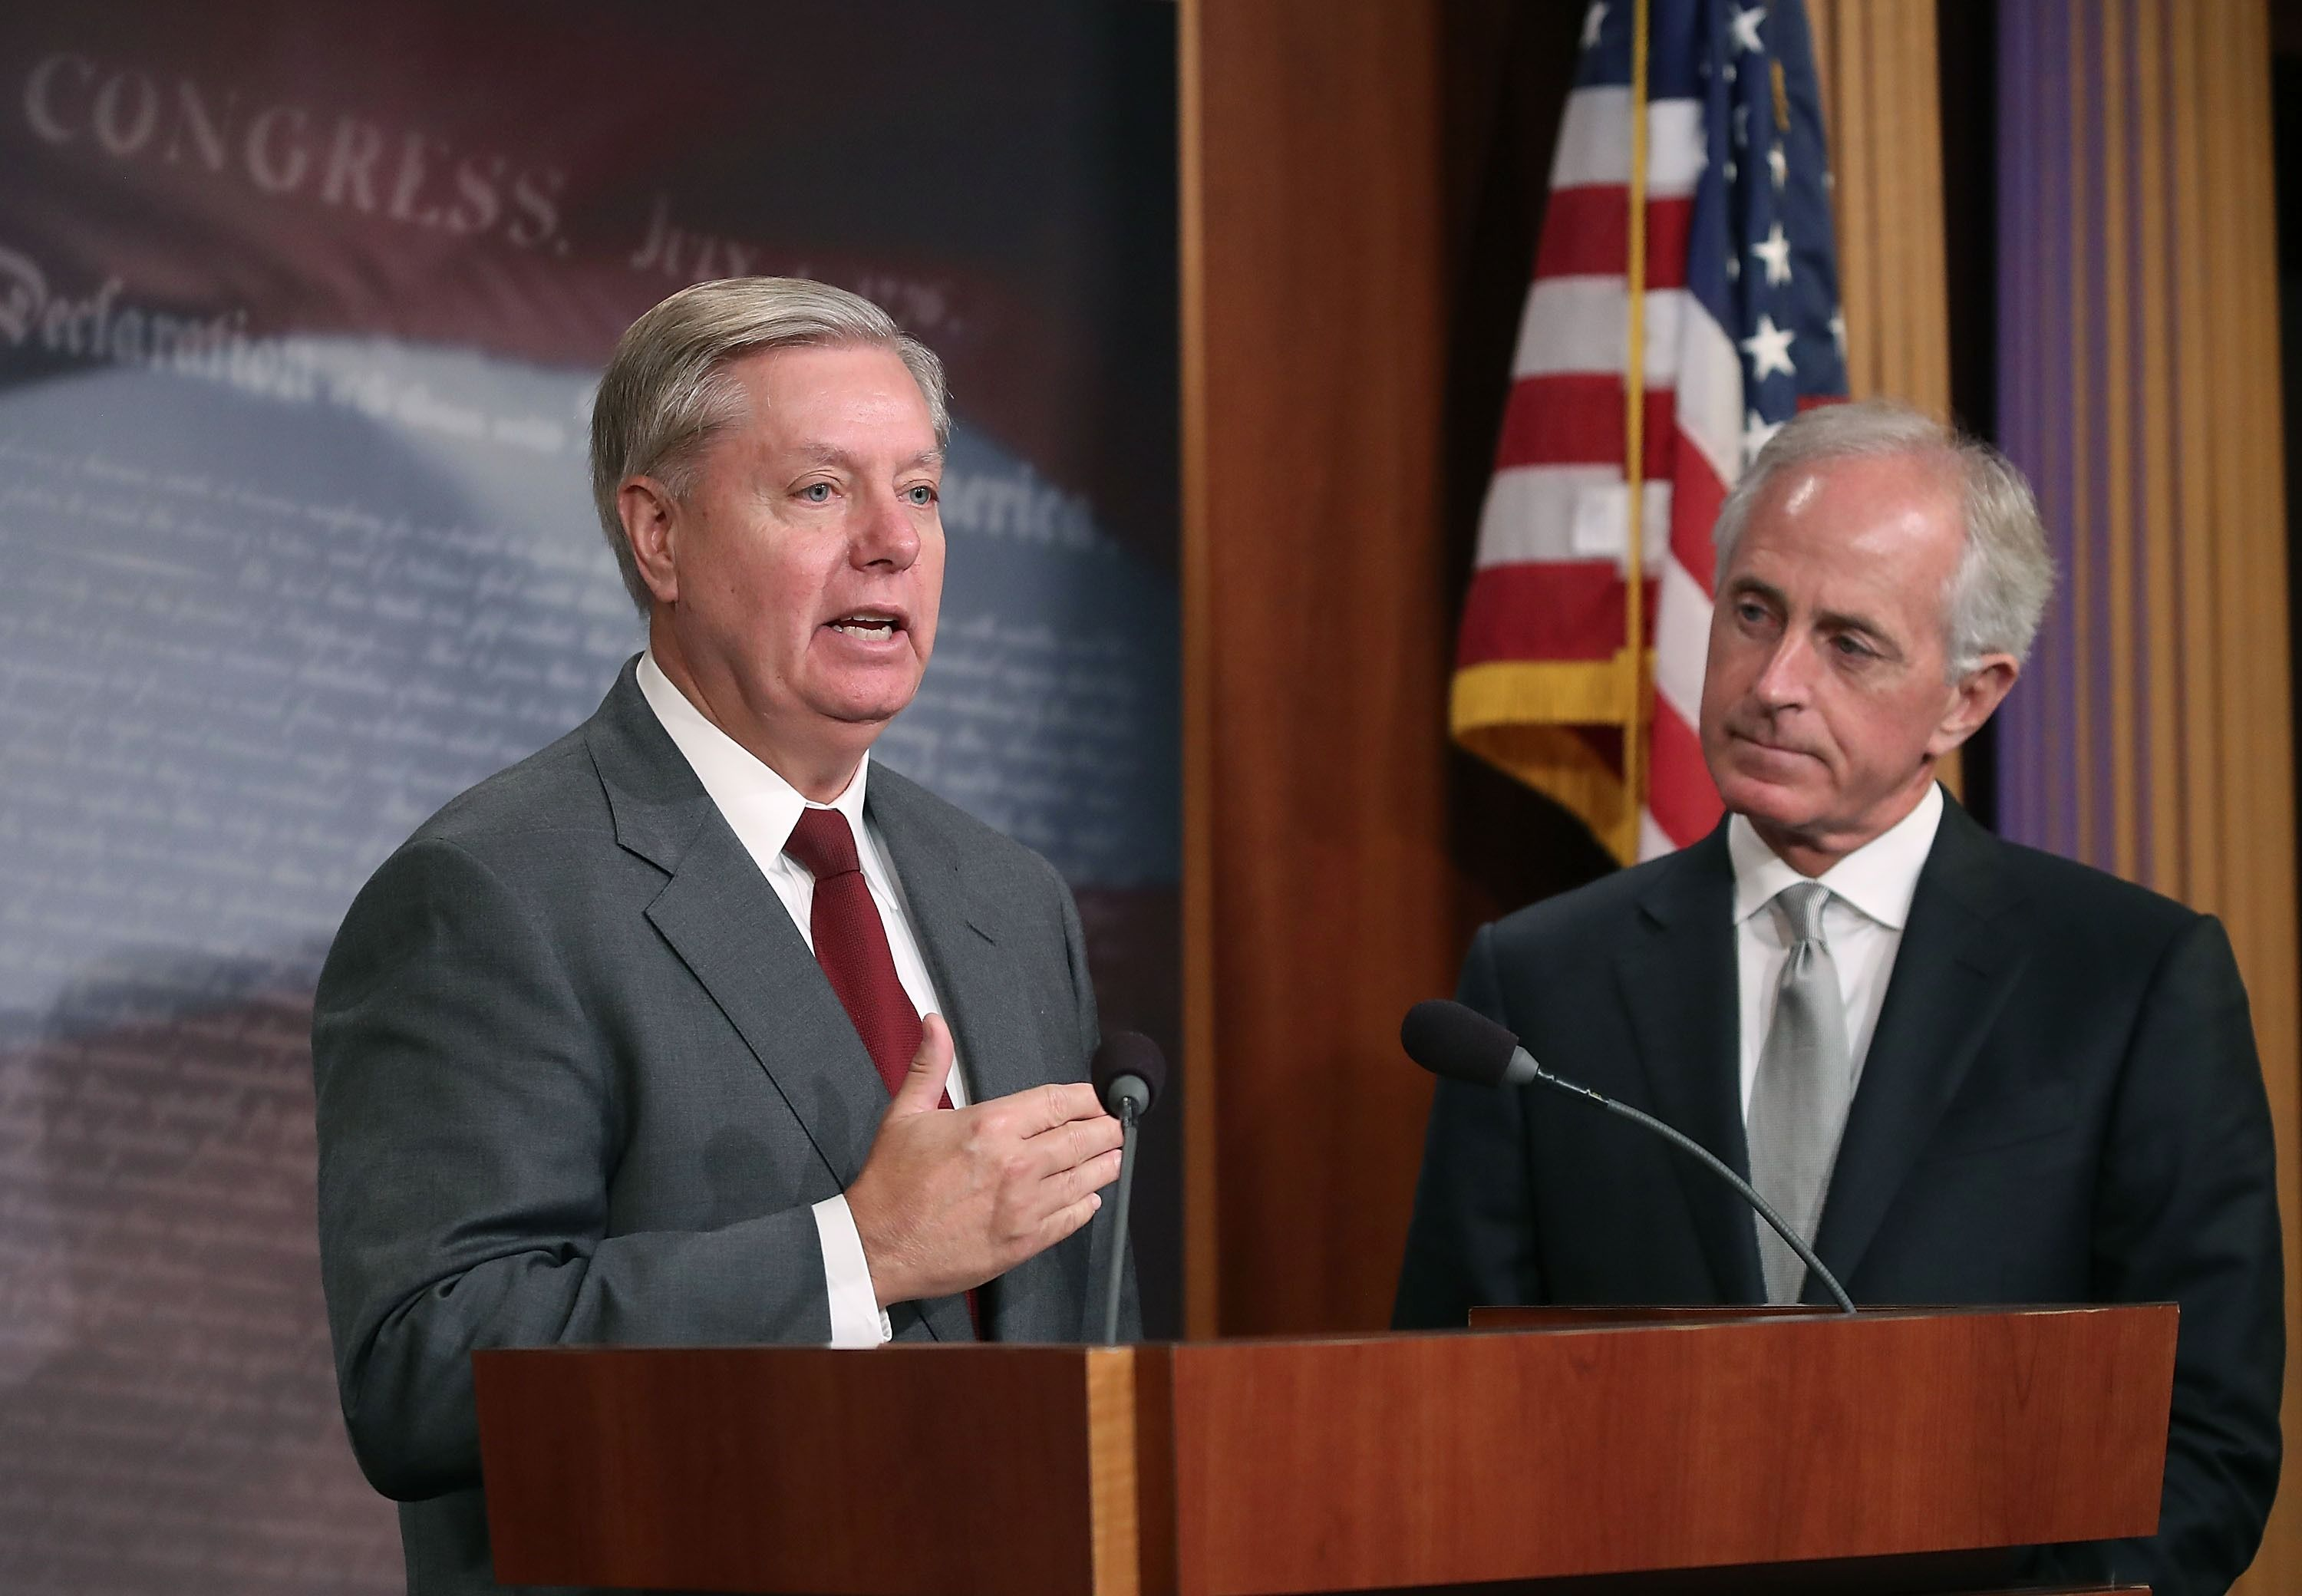 Senators Lindsey Graham (left) and Bob Corker discuss the Taylor Force Act, August 3, 2017